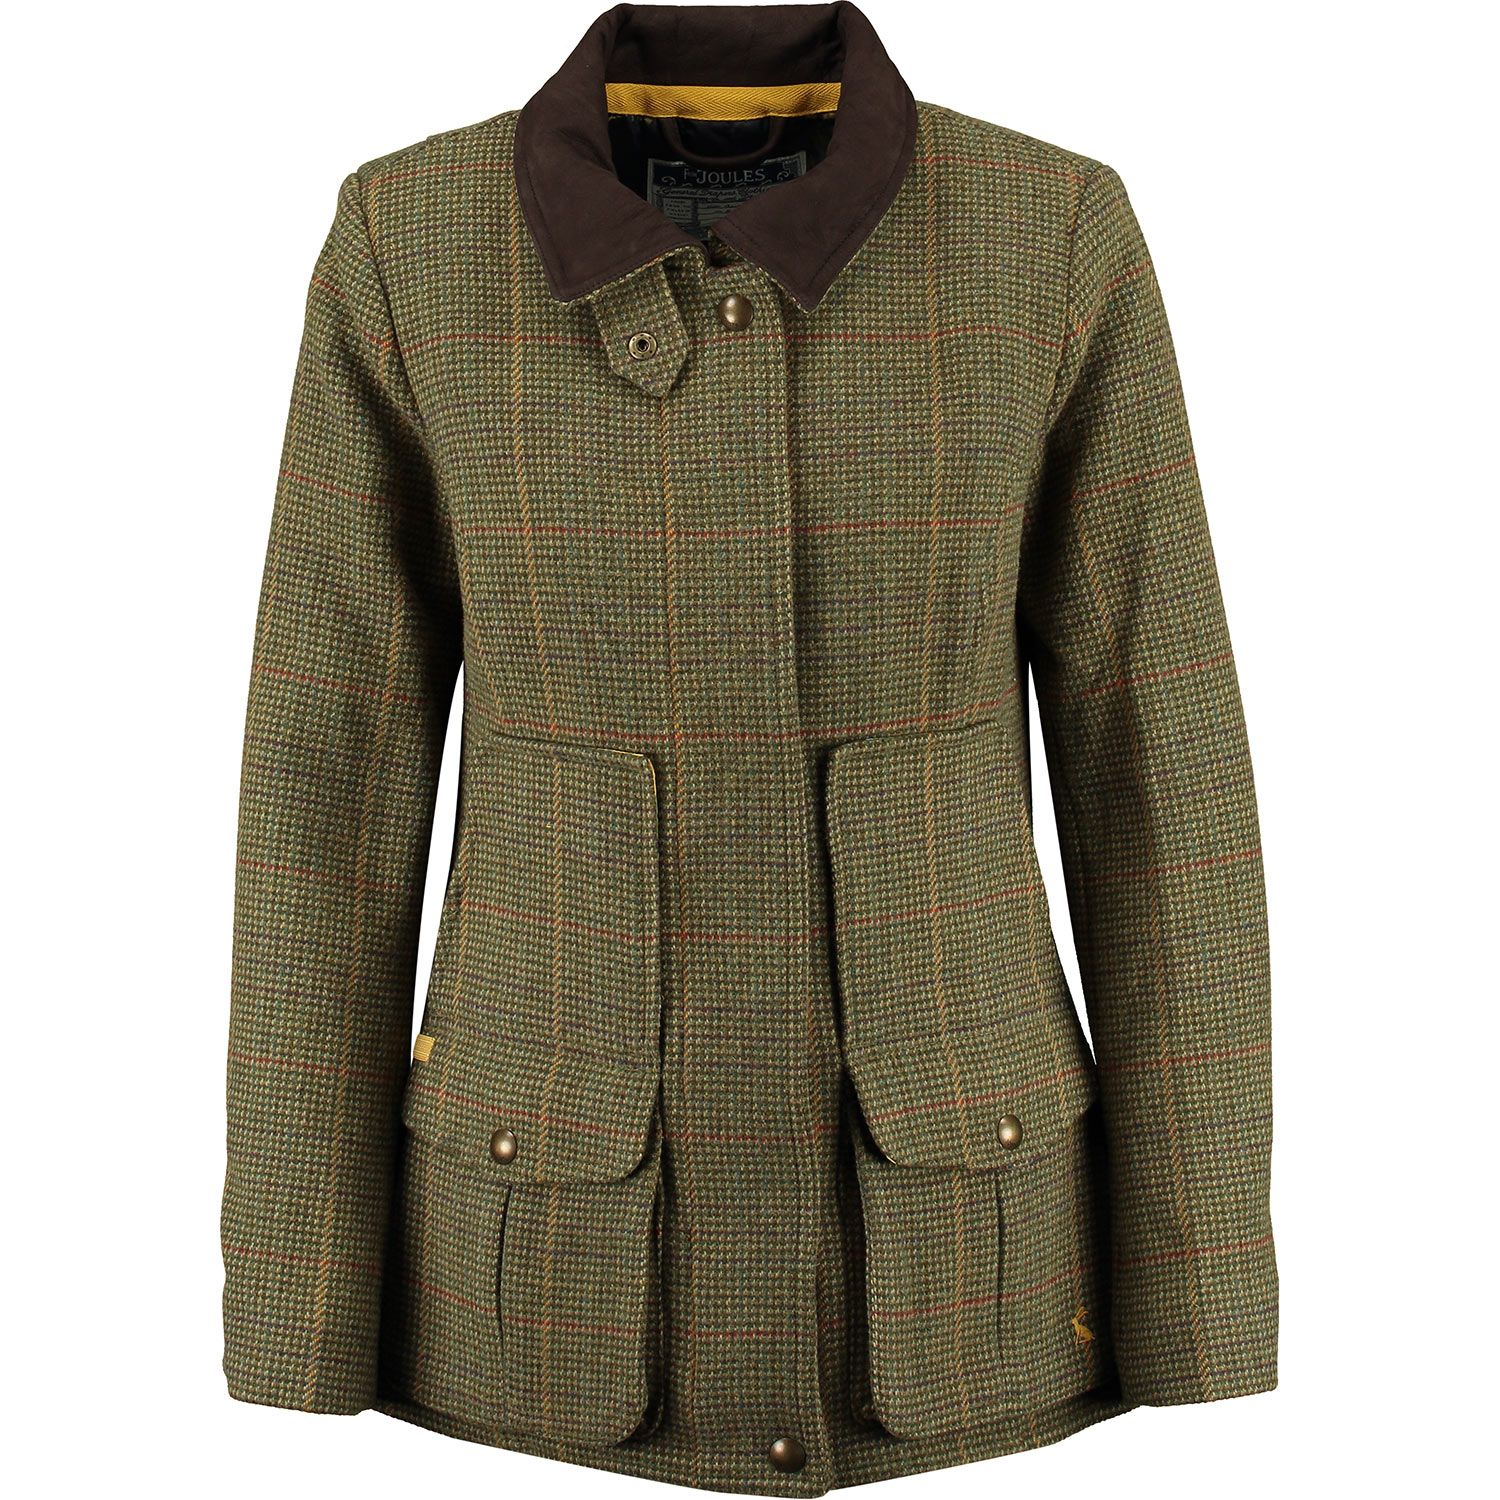 "£99.99 ""Joules"" Green Tweed Field Coat - TK Maxx"